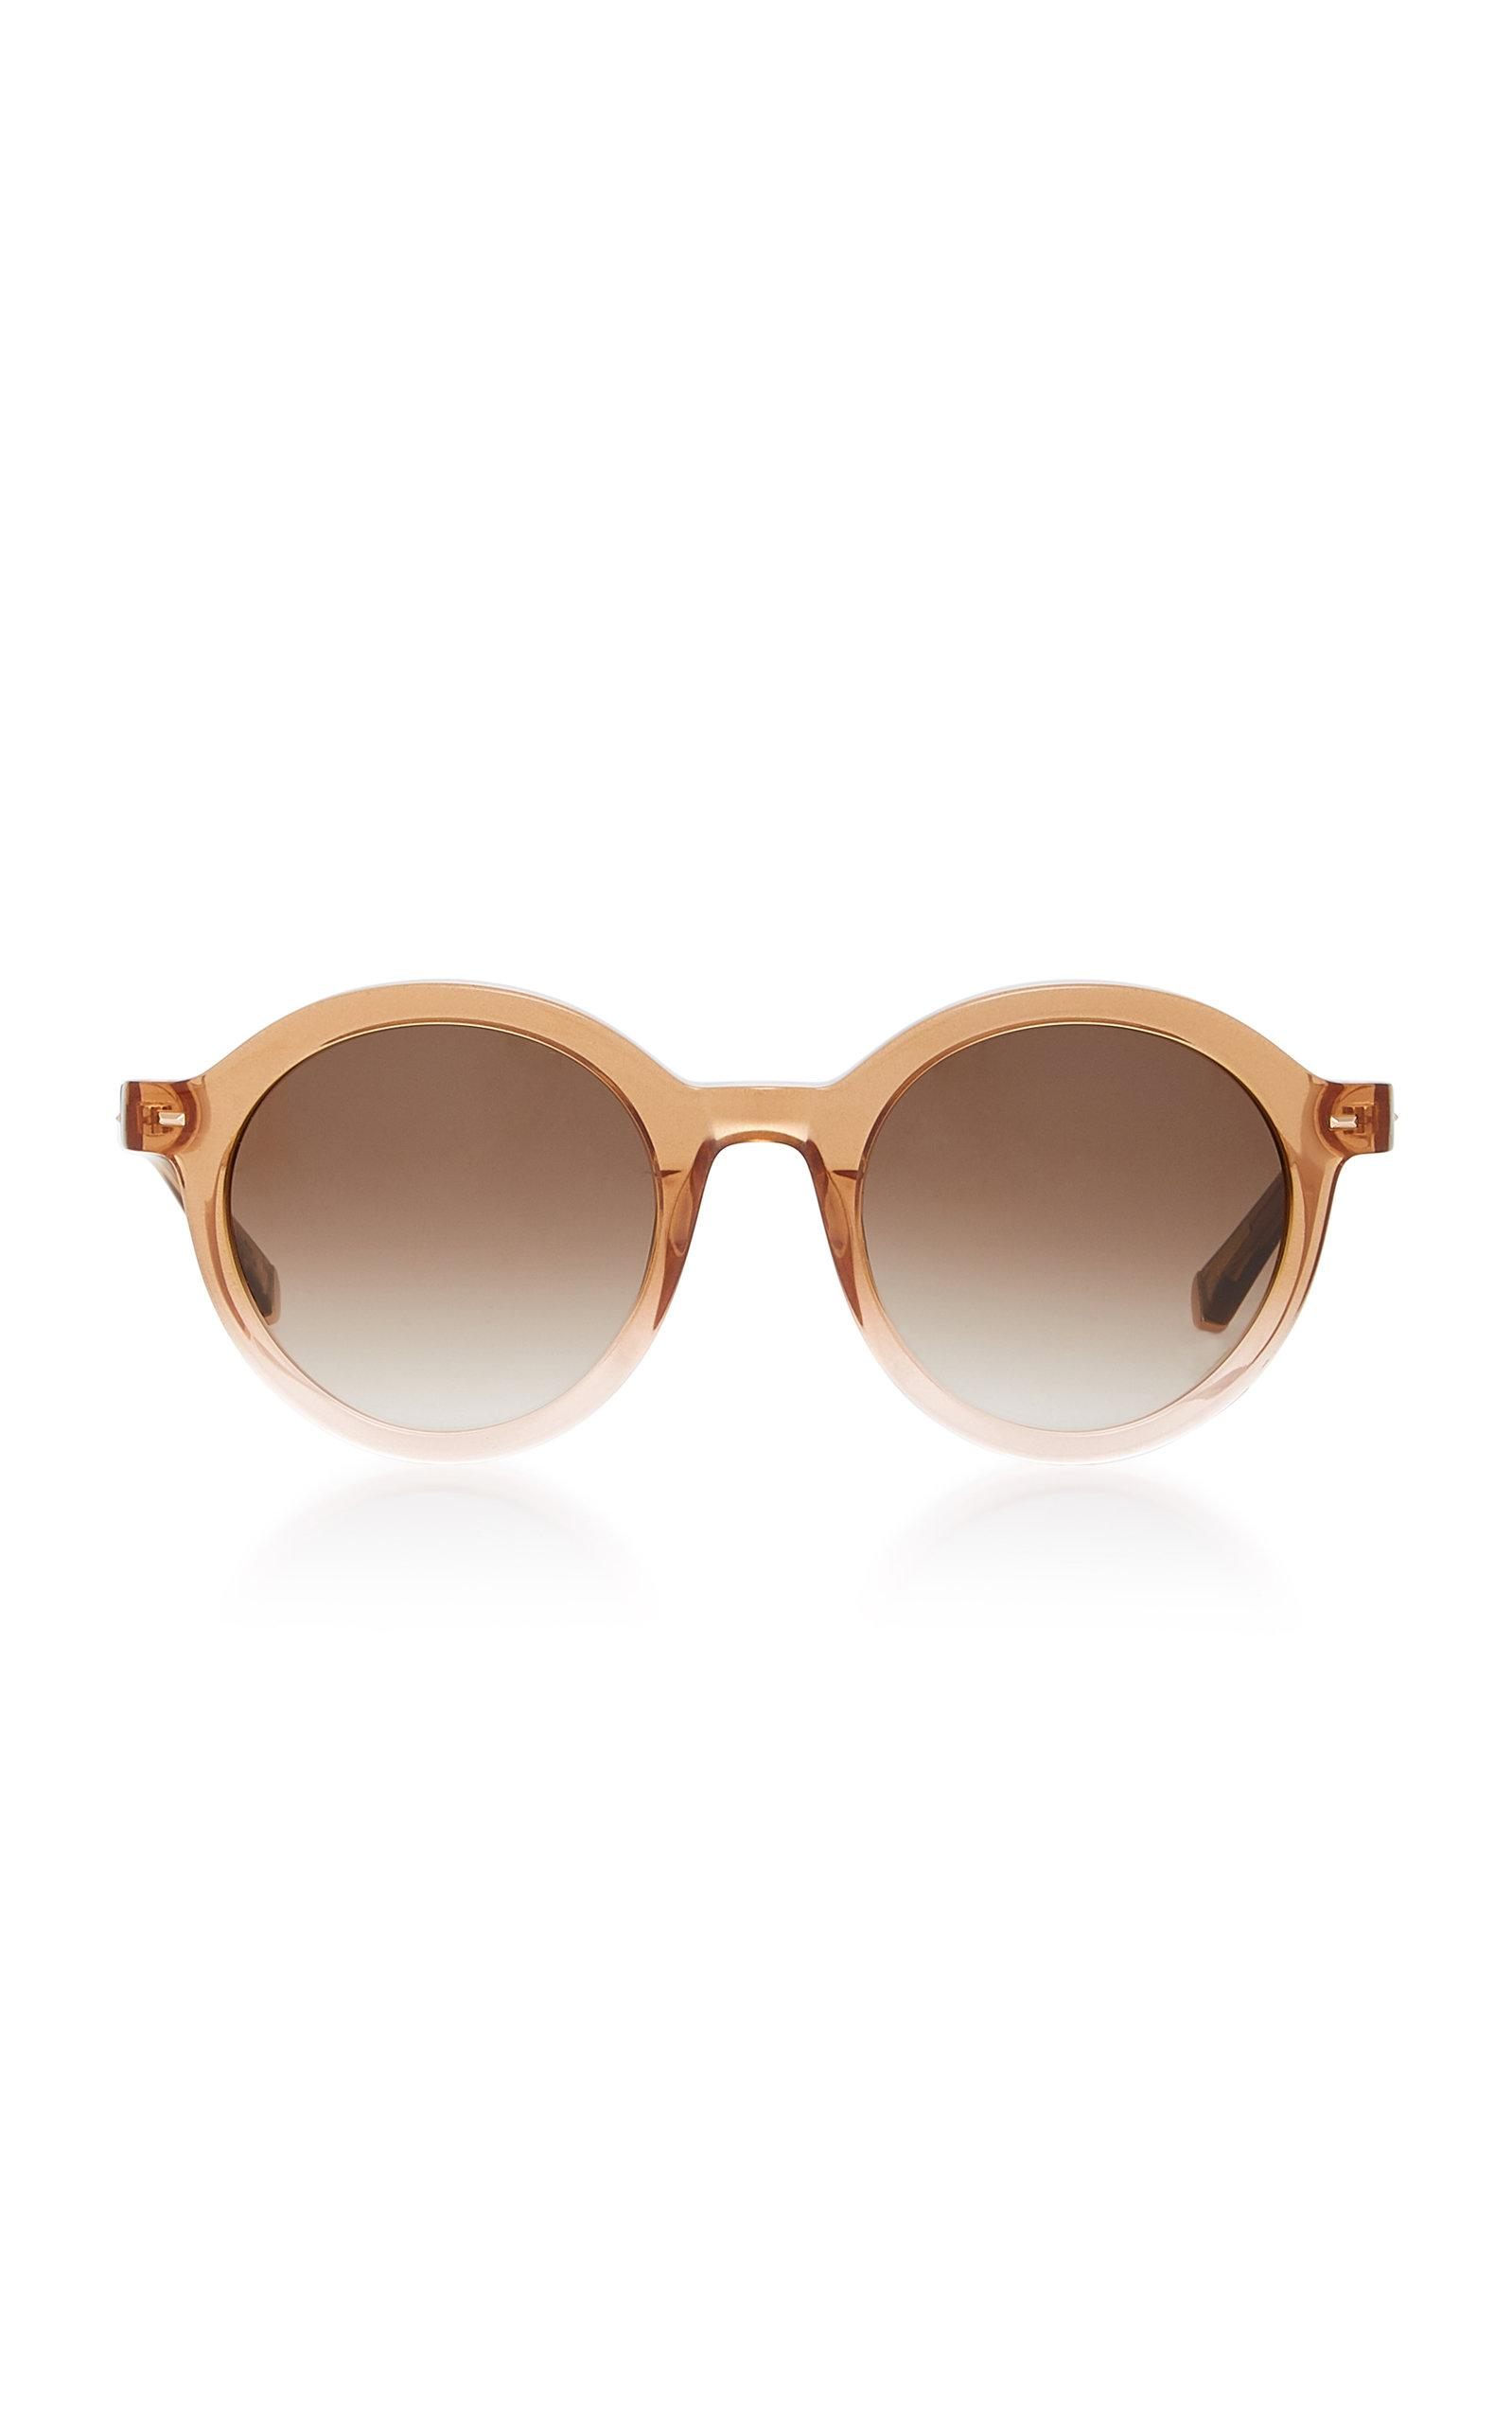 Flora Round-Frame Acetate And Metal Sunglasses Kate Young for Tura q9KGr